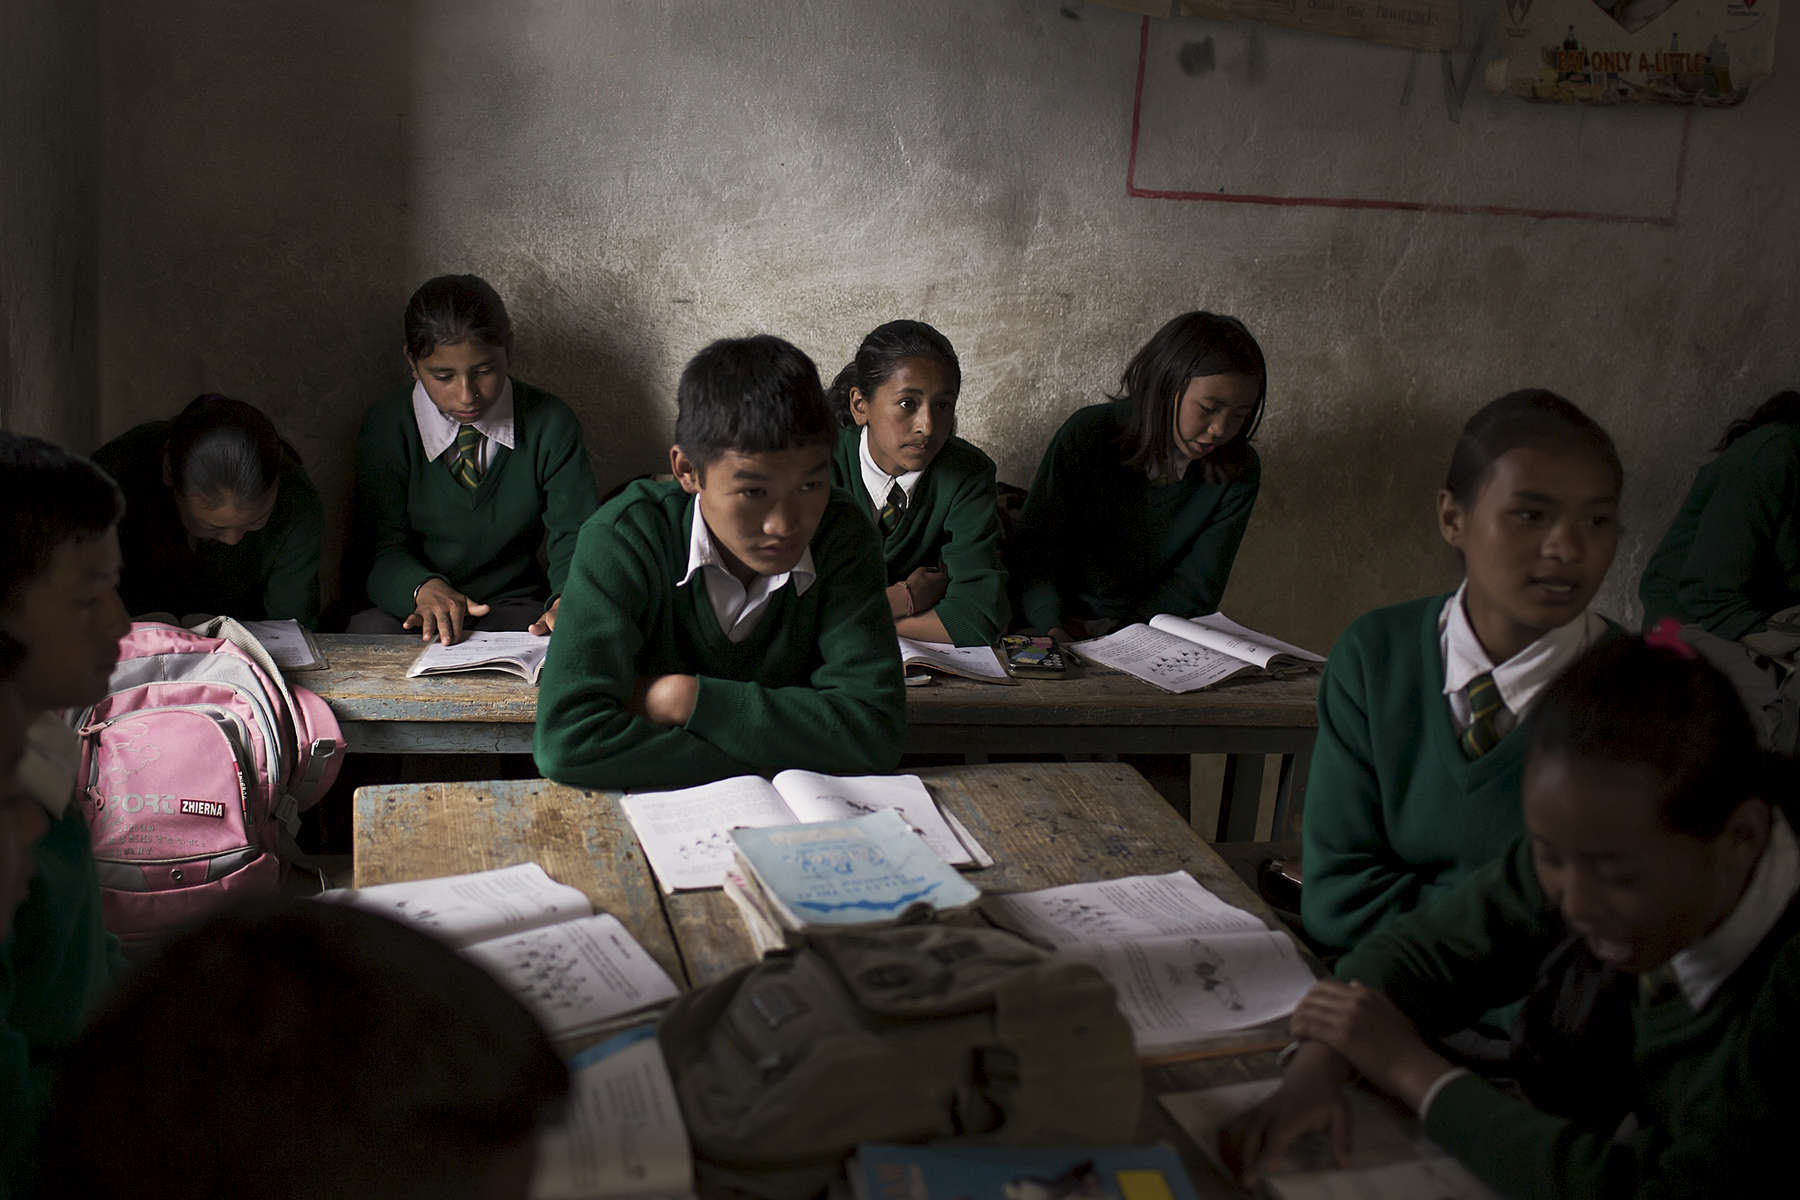 Students in class 8 at Jana Jaguti Lower Secondary School participate in an interactive activity. The Australian Himalayan Foundation through its Nepal partner REED runs teacher training programs for the teachers at the Jana Jaguti Lower Secondary School in the remote Solu Khumbu District of Nepal.